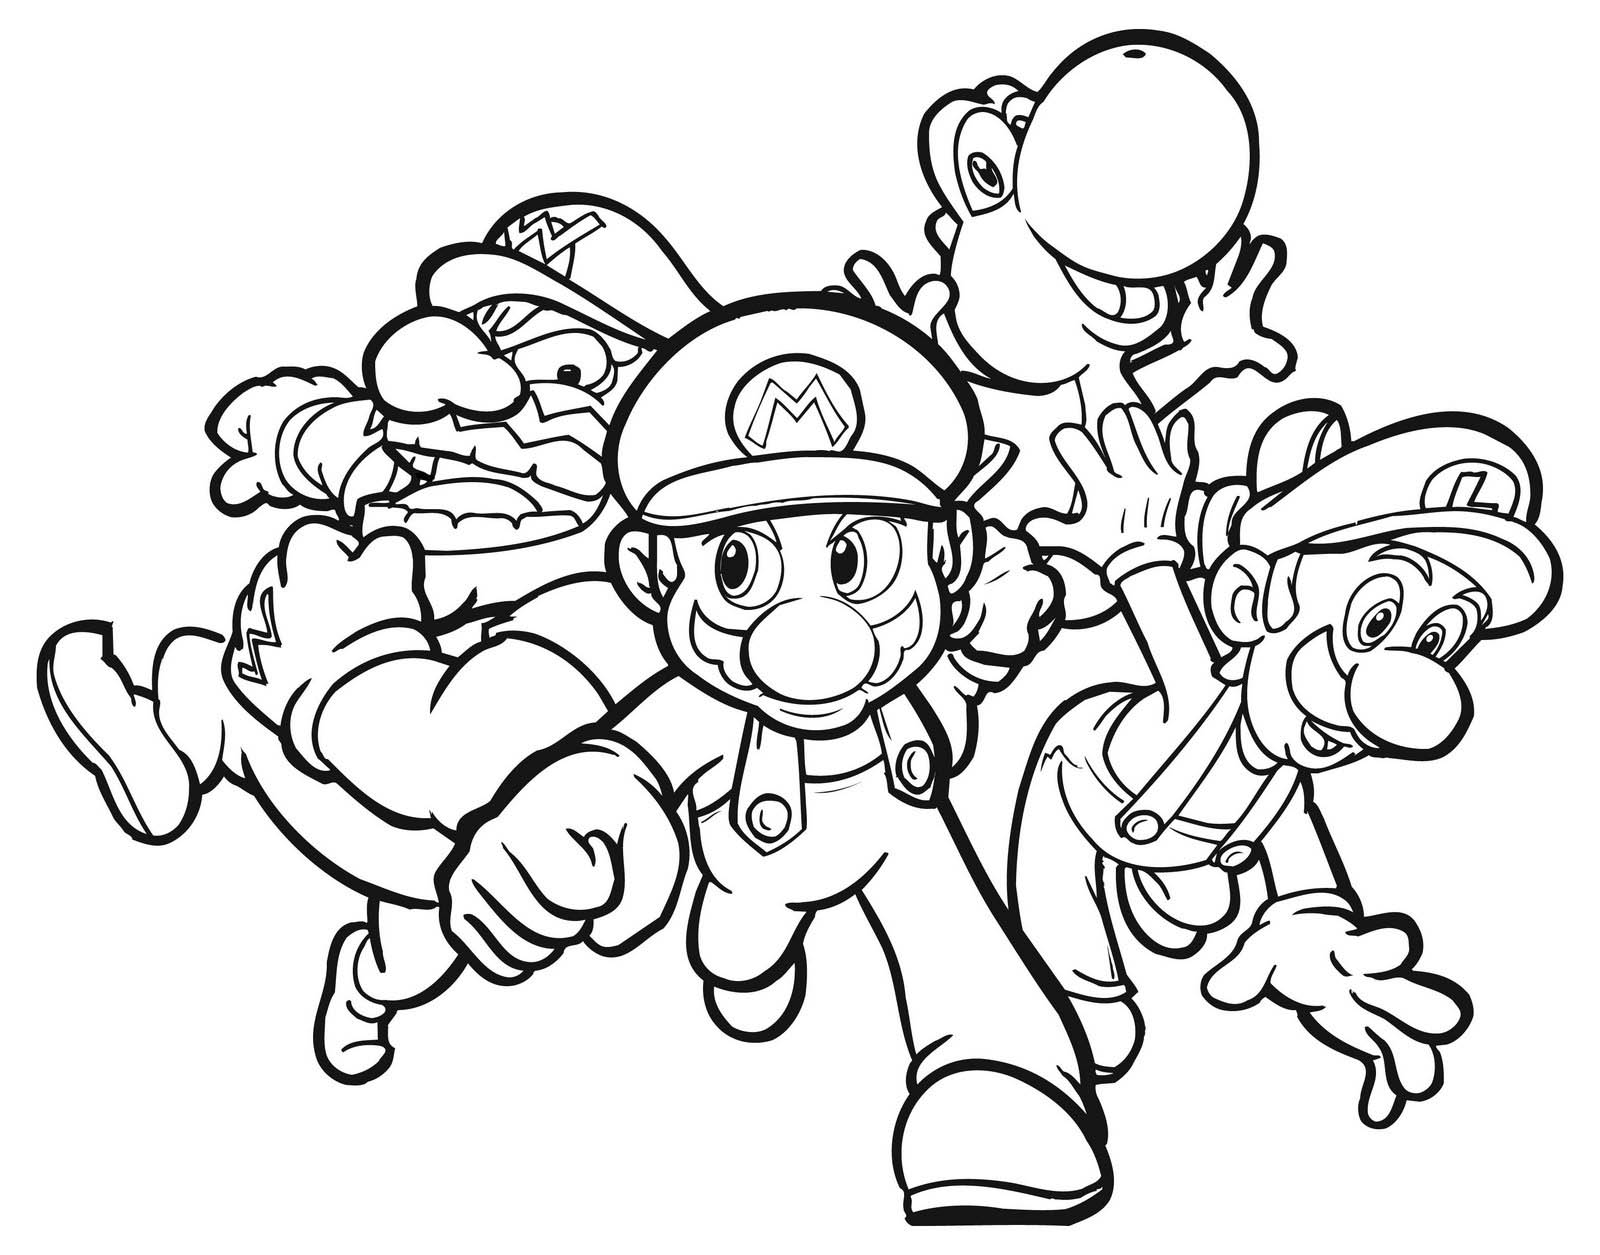 printable pictures of mario characters mario kart characters coloring pages coloring home mario of characters pictures printable